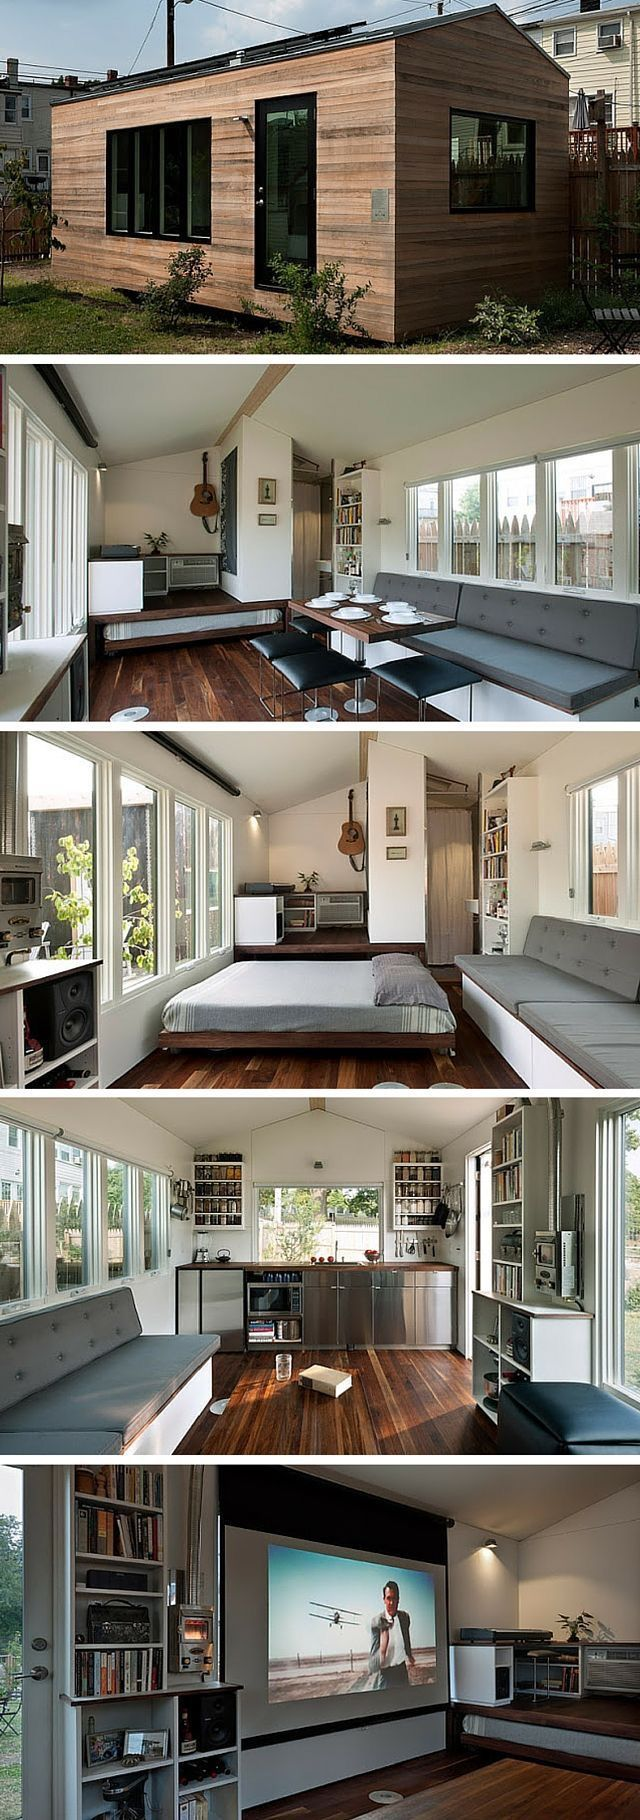 luxurious and splendid tiny house rv. 101 Best Tiny Luxury Interior and Decor 3603 best houses images on Pinterest  house cabin